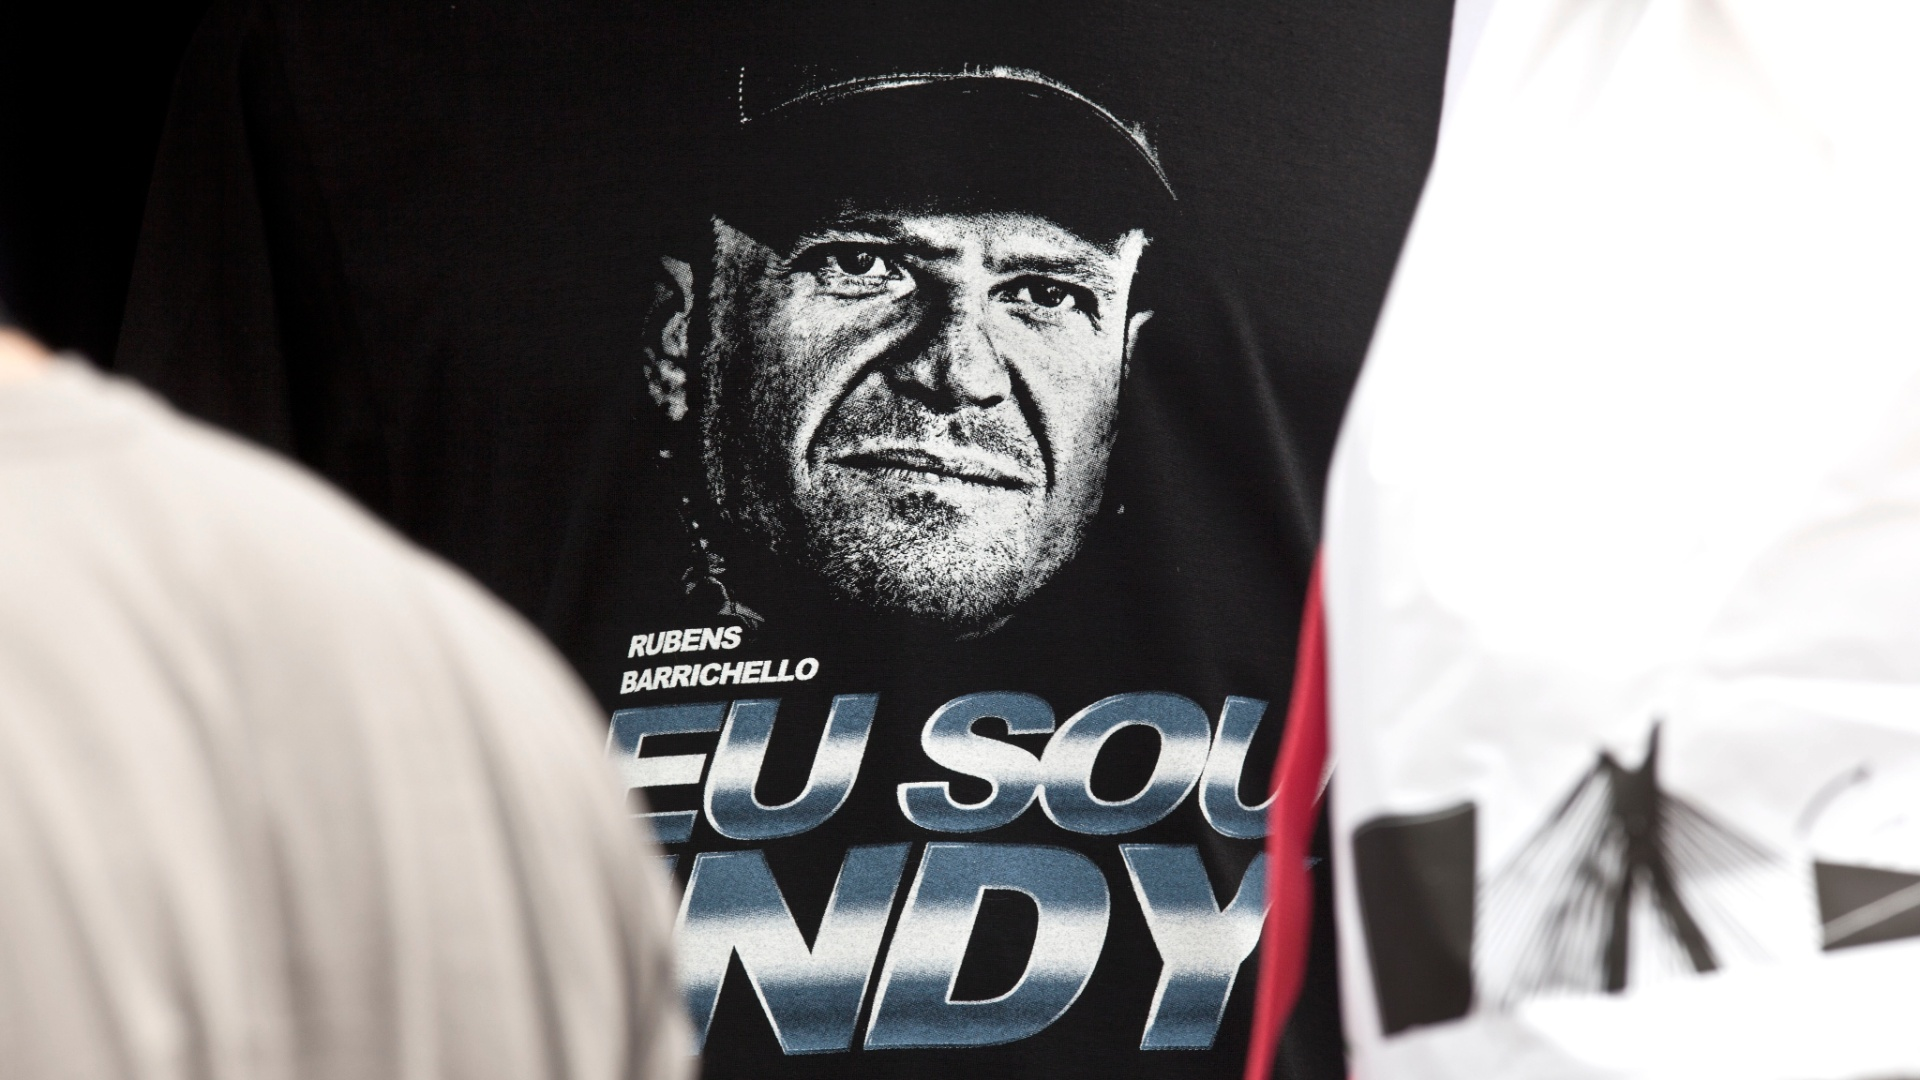 Camiseta de Rubens Barrichello vendida no Anhembi